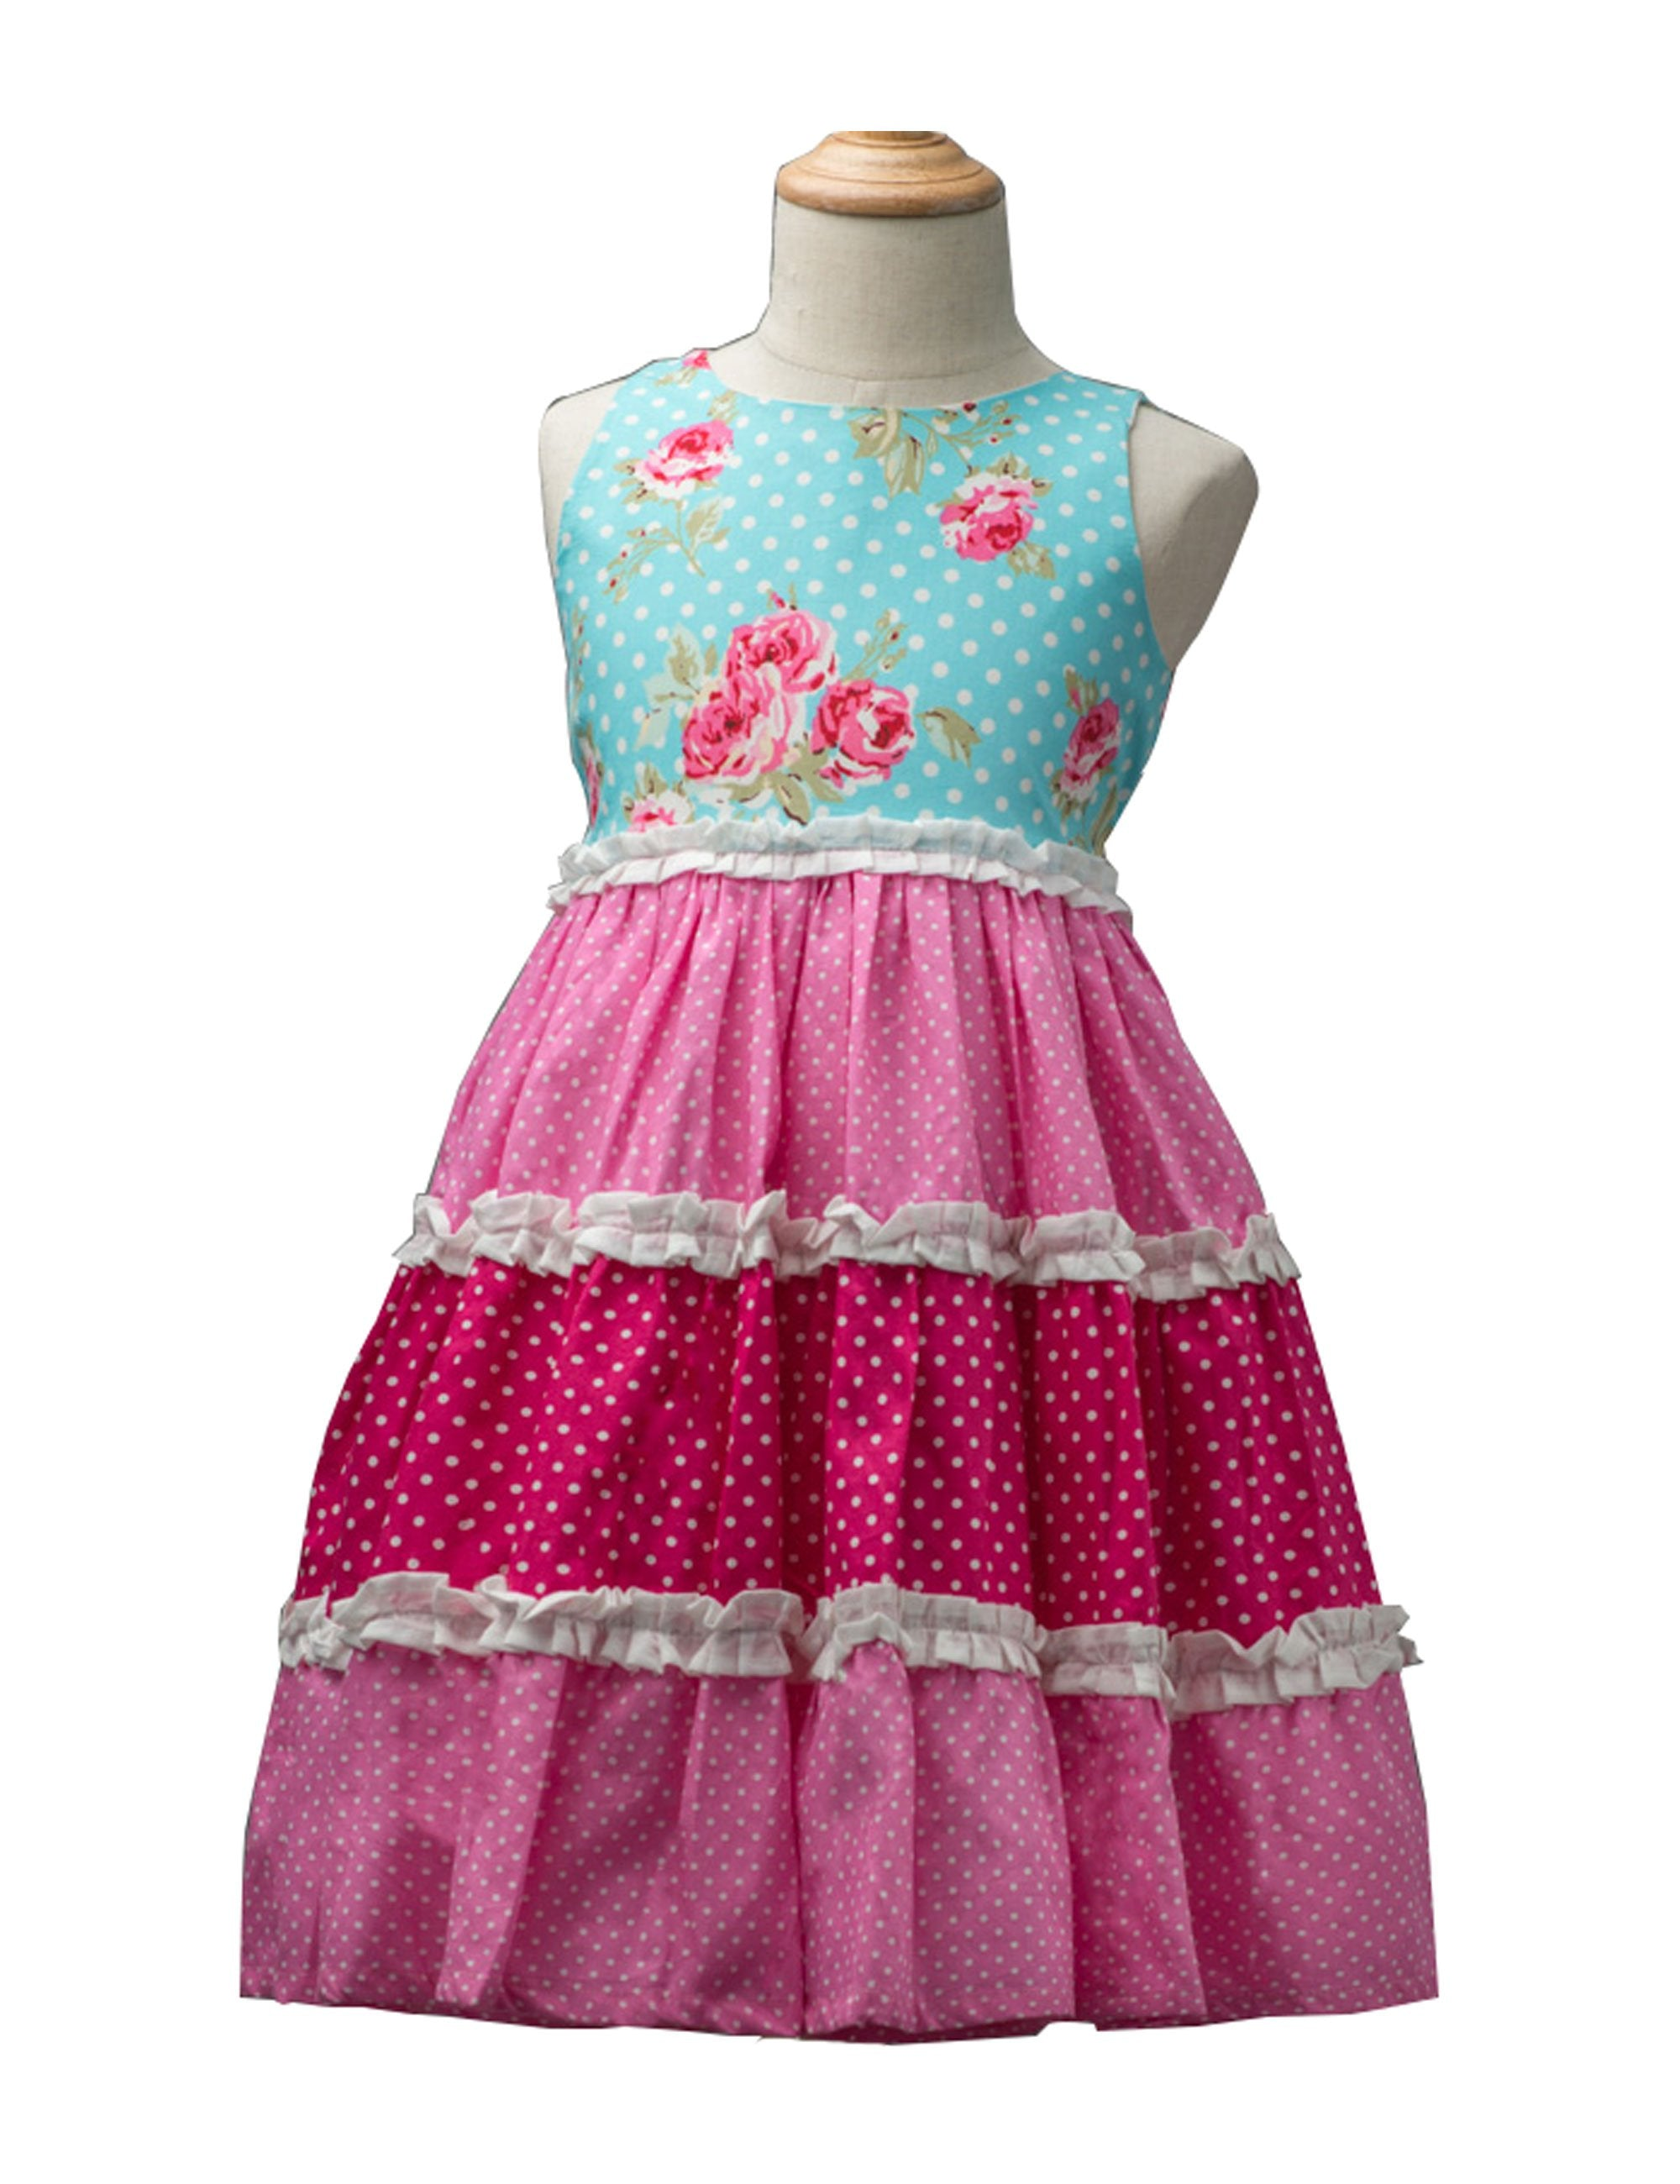 Sleeveless Tiered Cotton Dress in Blue and Pink for Girls